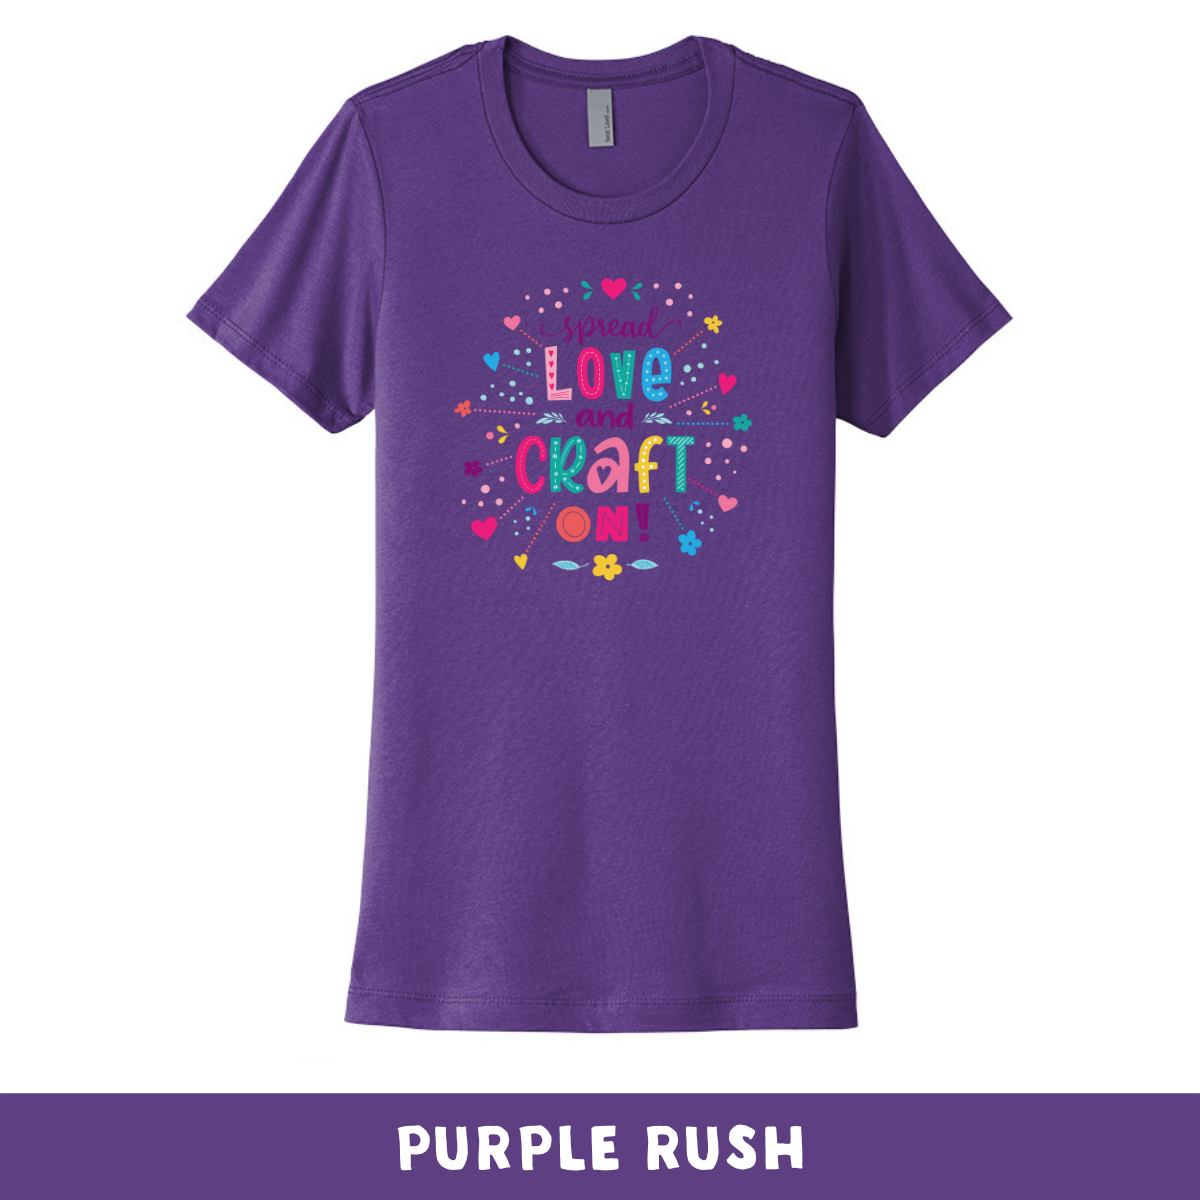 Purple Rush - Crew Neck Boyfriend Tee - Spread Love and Craft On